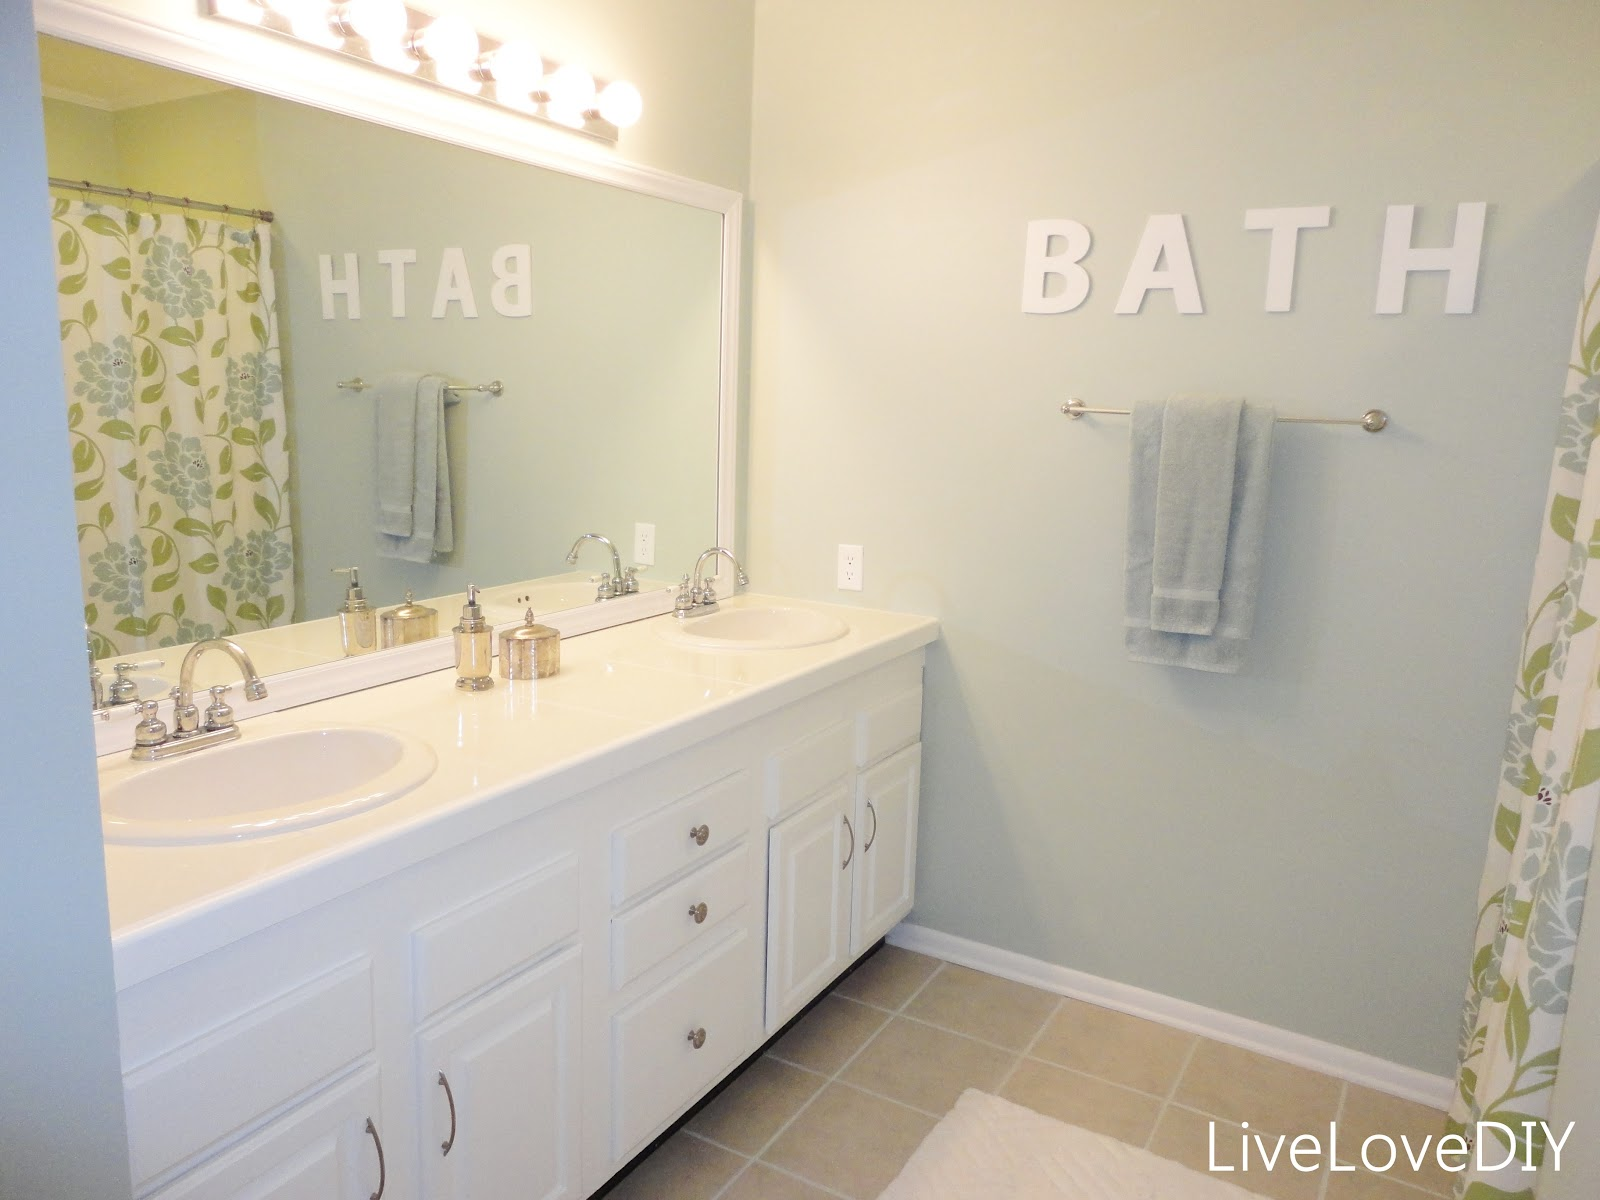 Livelovediy easy diy ideas for updating your bathroom - Exterior paint in bathroom set ...